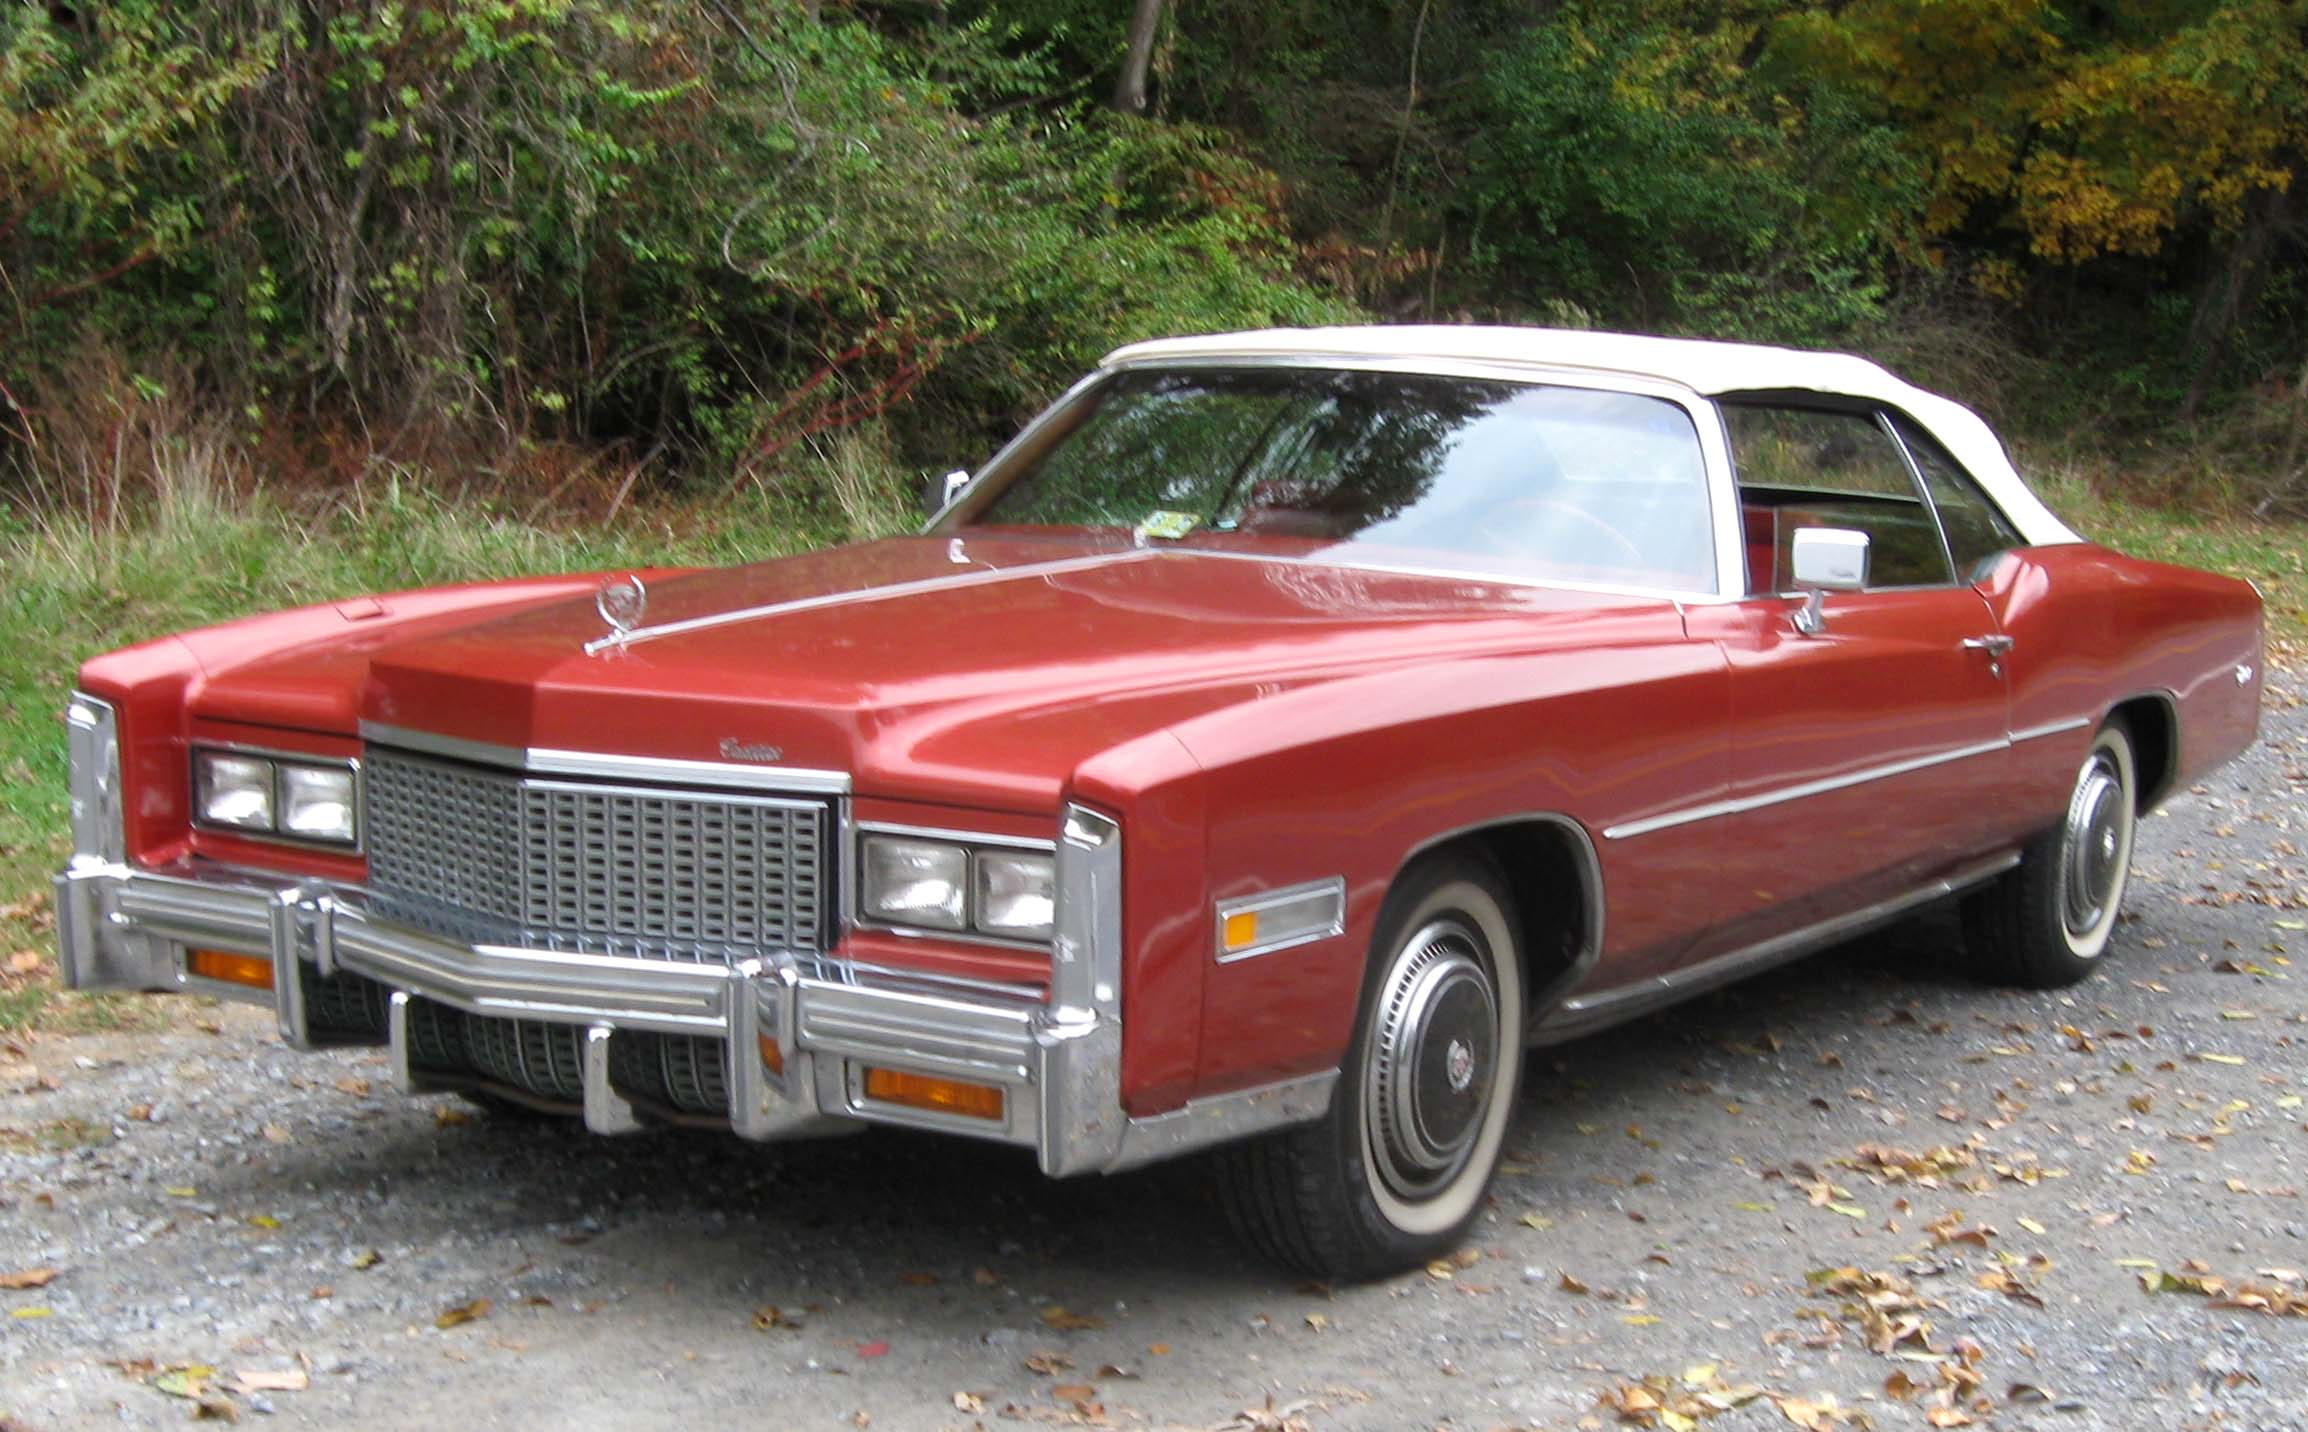 http://upload.wikimedia.org/wikipedia/commons/e/eb/1976_Cadillac_Eldorado_convertible_3_--_10-23-2009.jpg